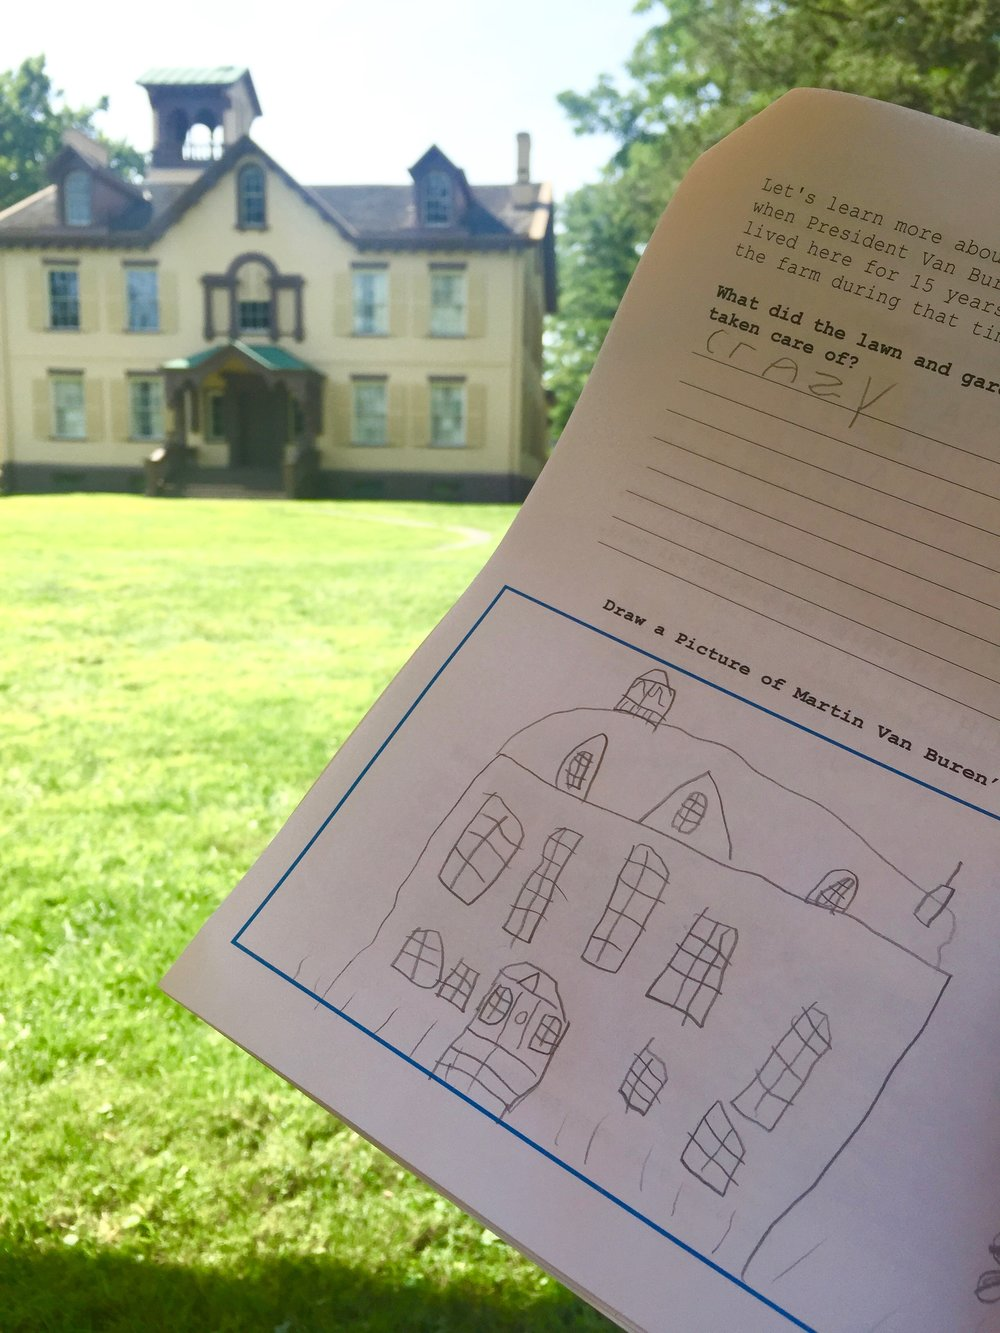 Martin Van Buren House workbook cheat sheet! Q: What did the lawn and gardens look like if they weren't take care of? A: CRAZY